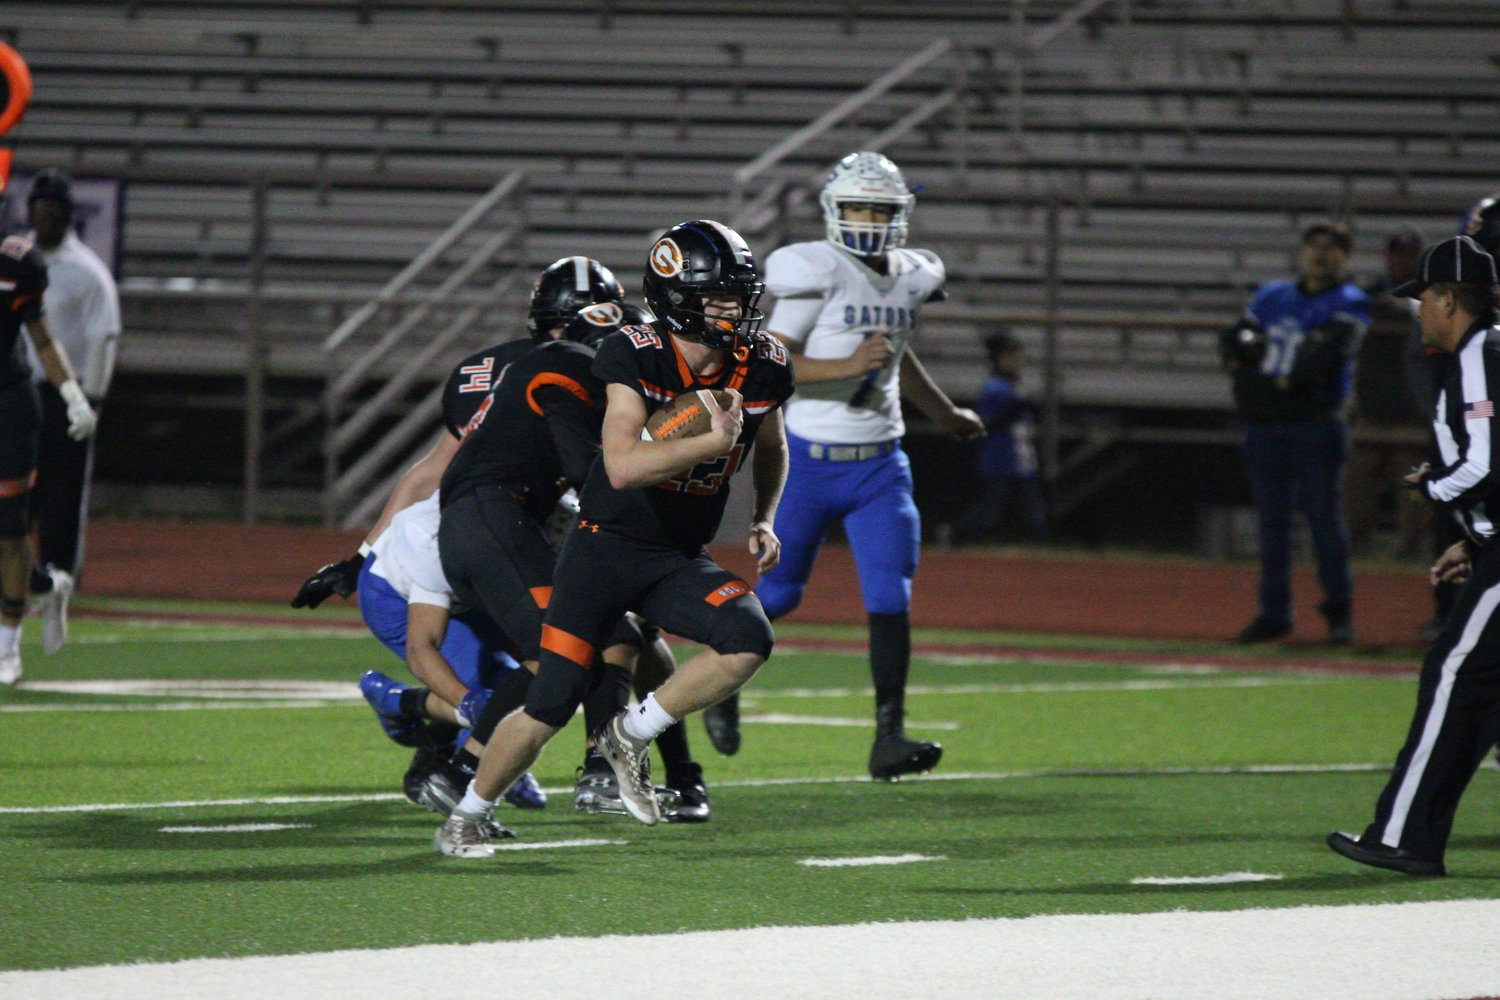 Starting quarterback Heath Henke (23) made his way into the end zone four times in Gonzales' 48-27 victory over Grulla.